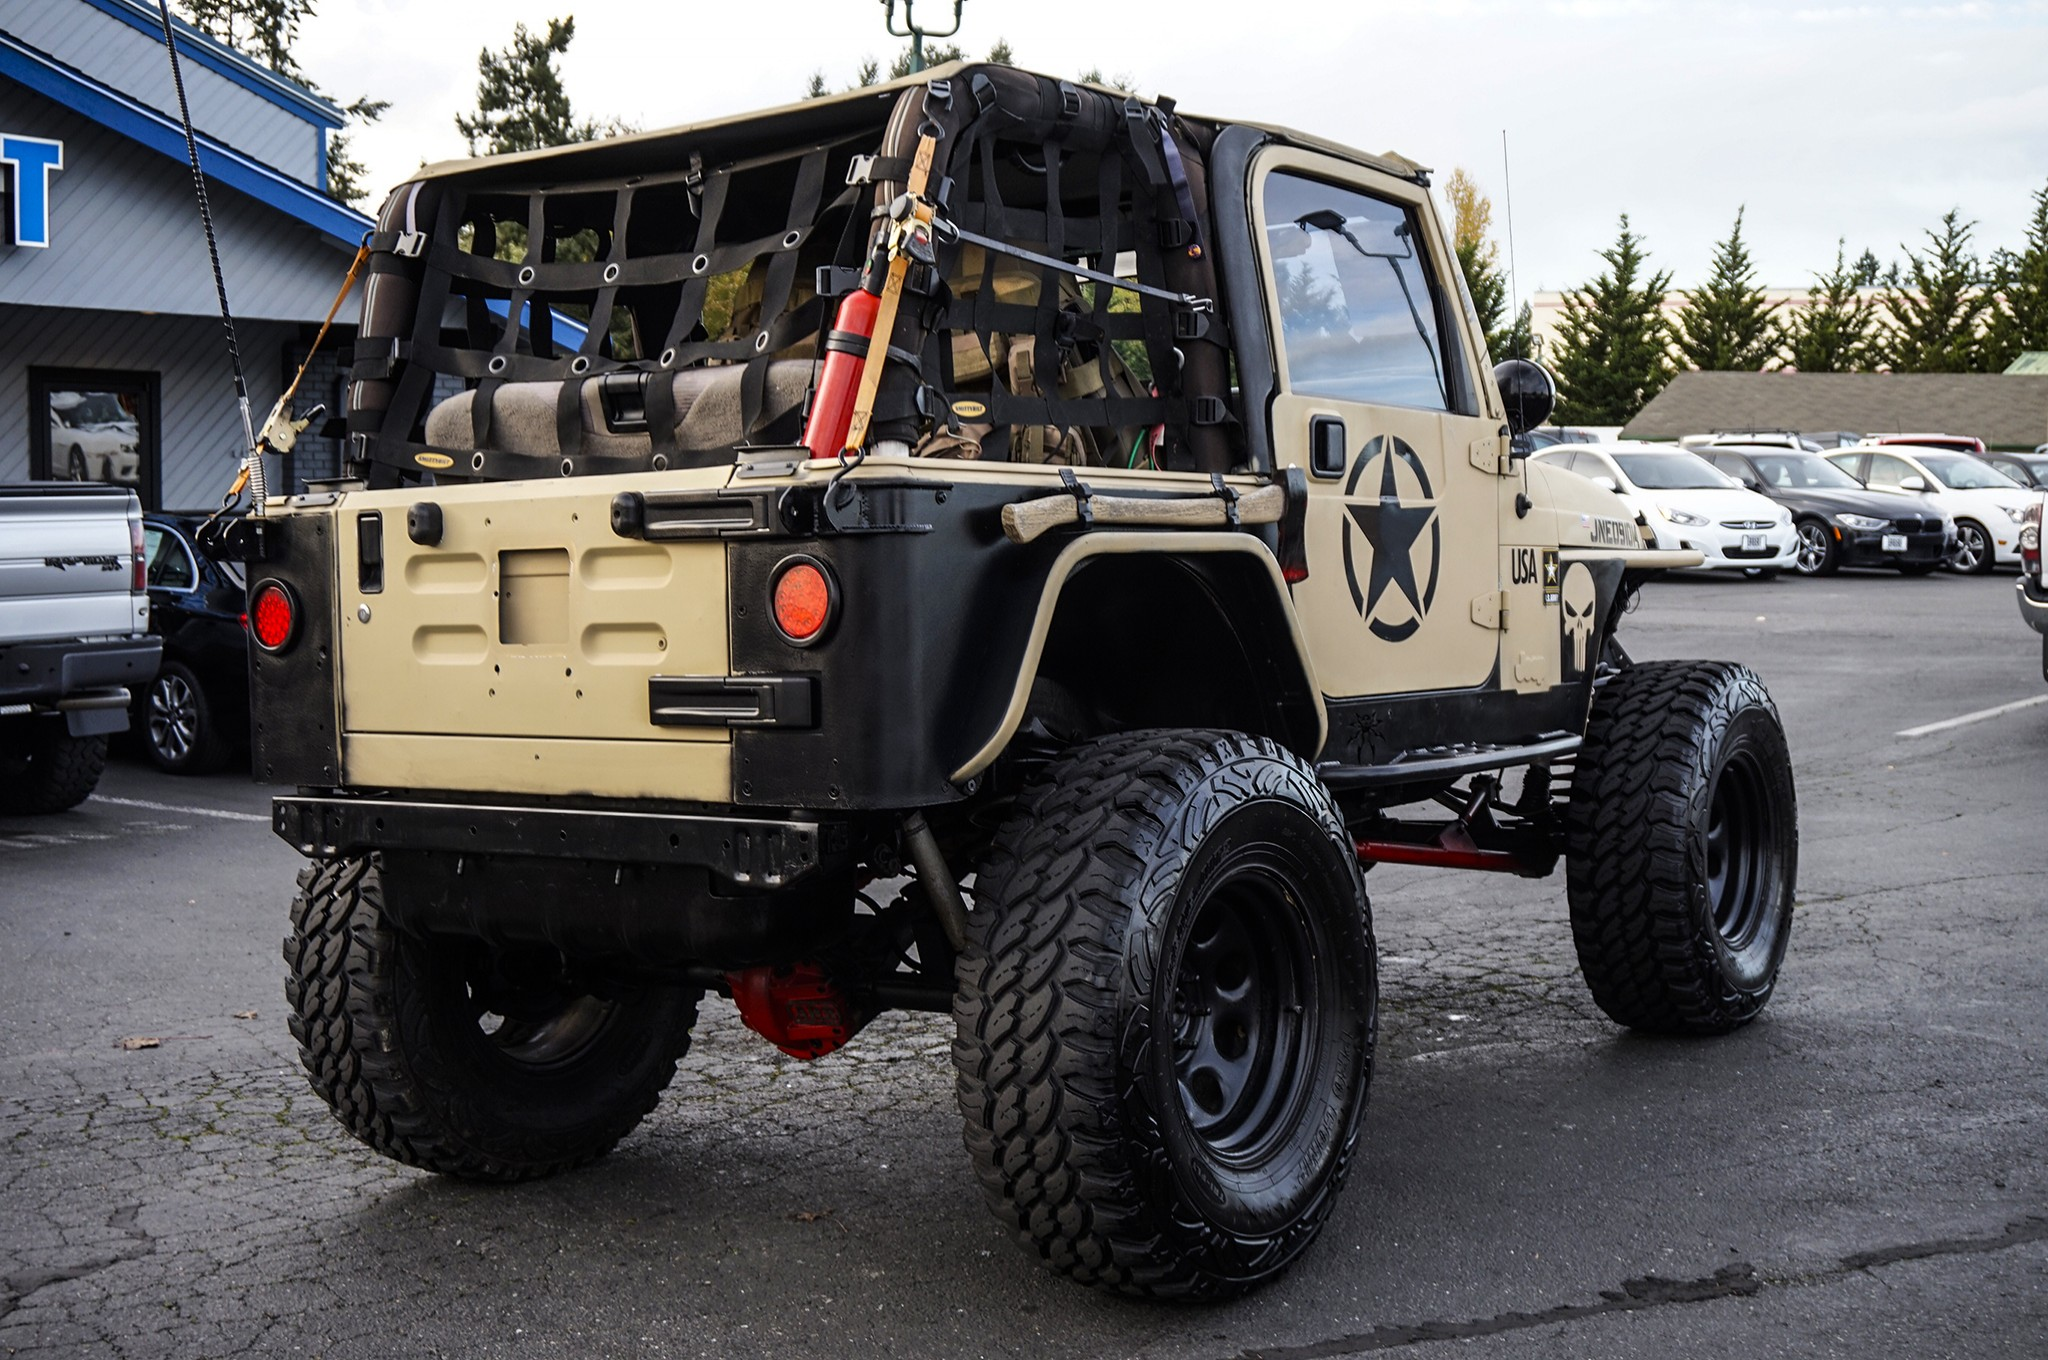 lifted 2004 jeep wrangler rubicon 4x4 - northwest motorsport